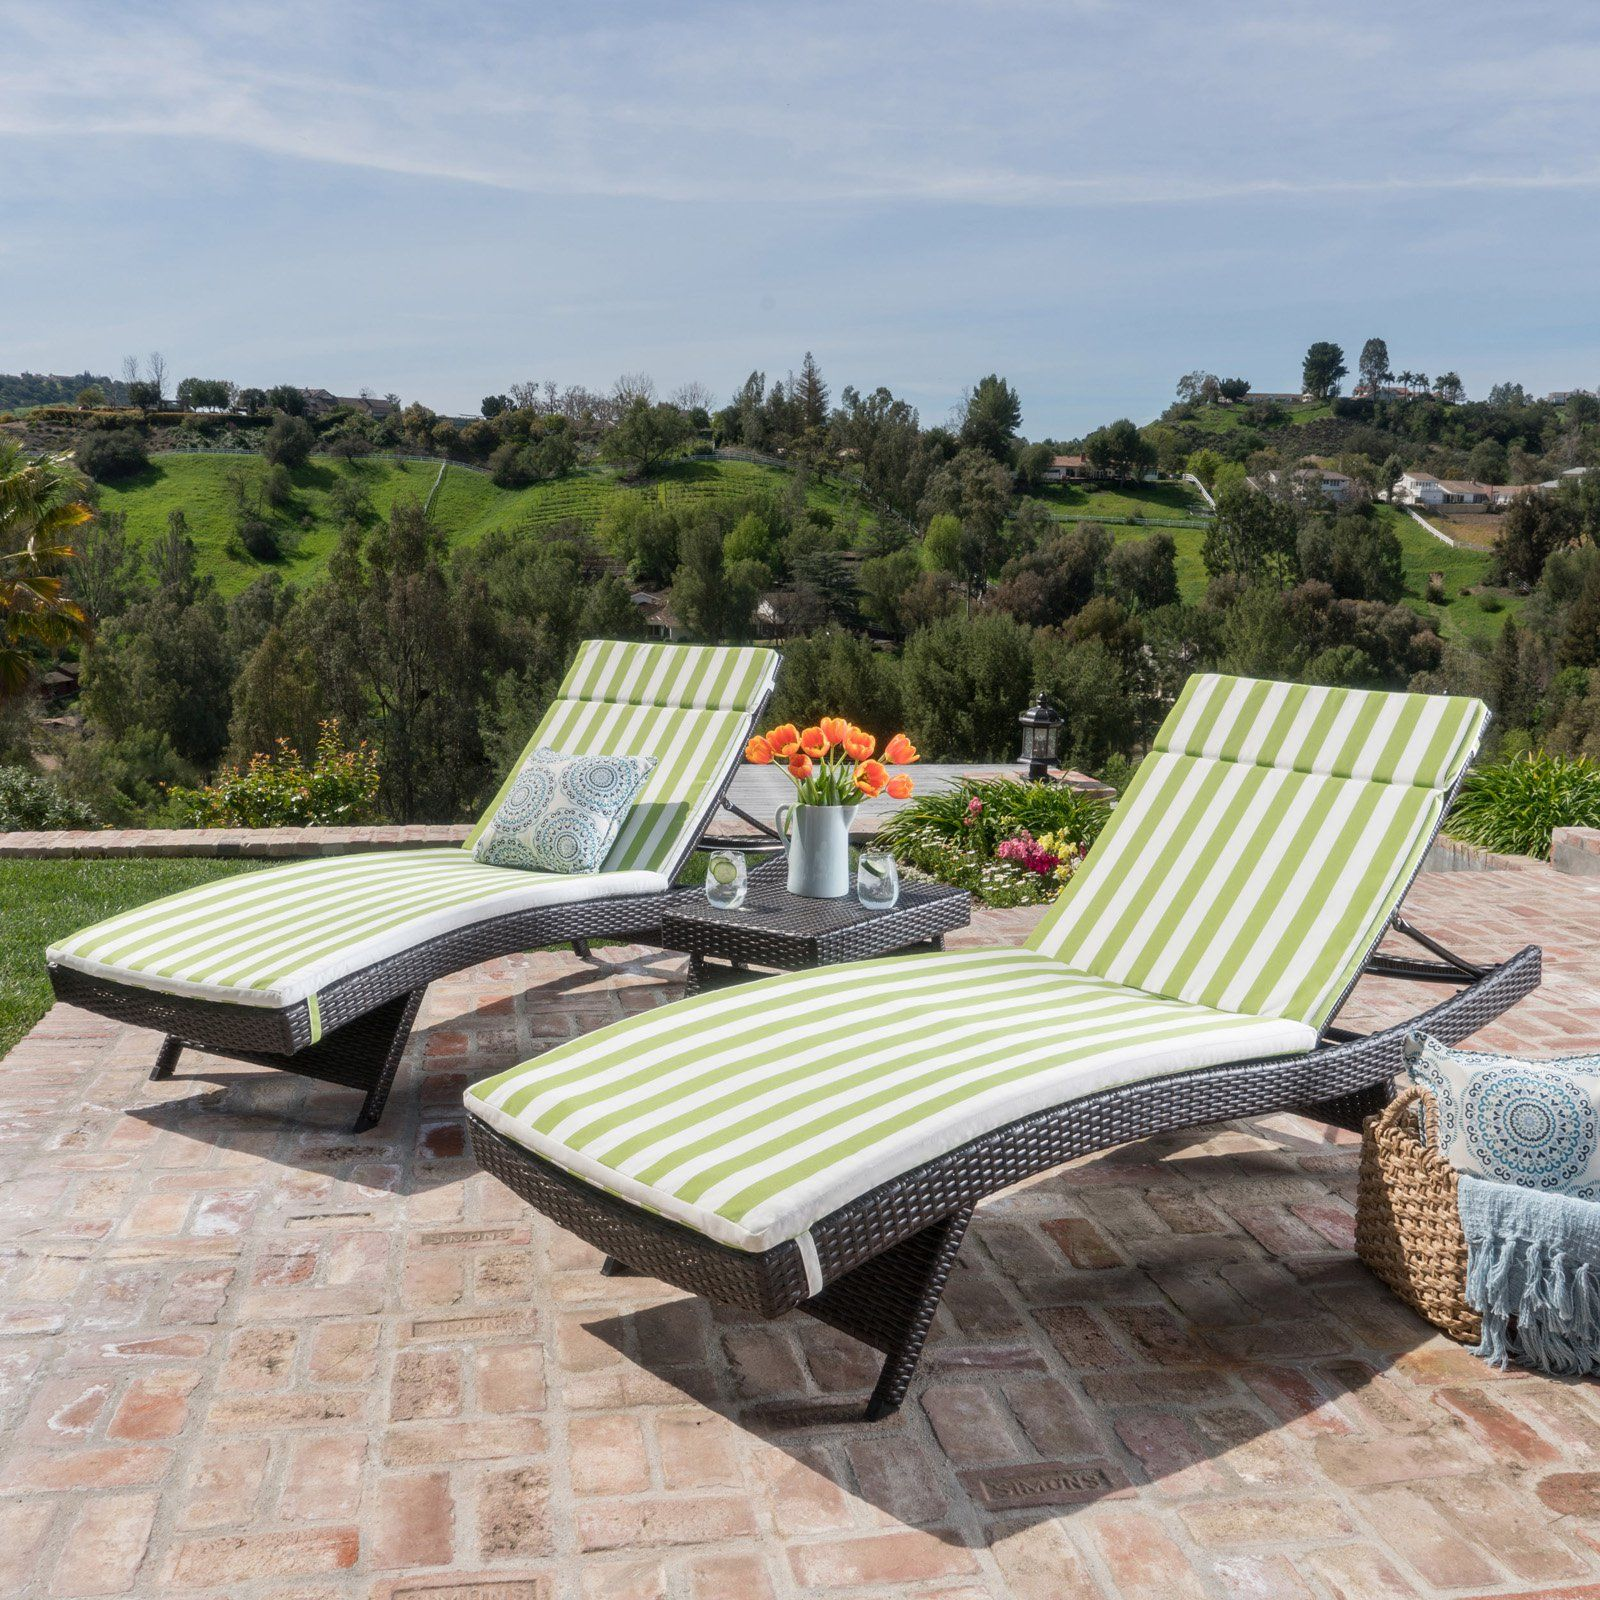 Salem Outdoor Wicker Chaise Lounge Set With Cushions Jungle Green In